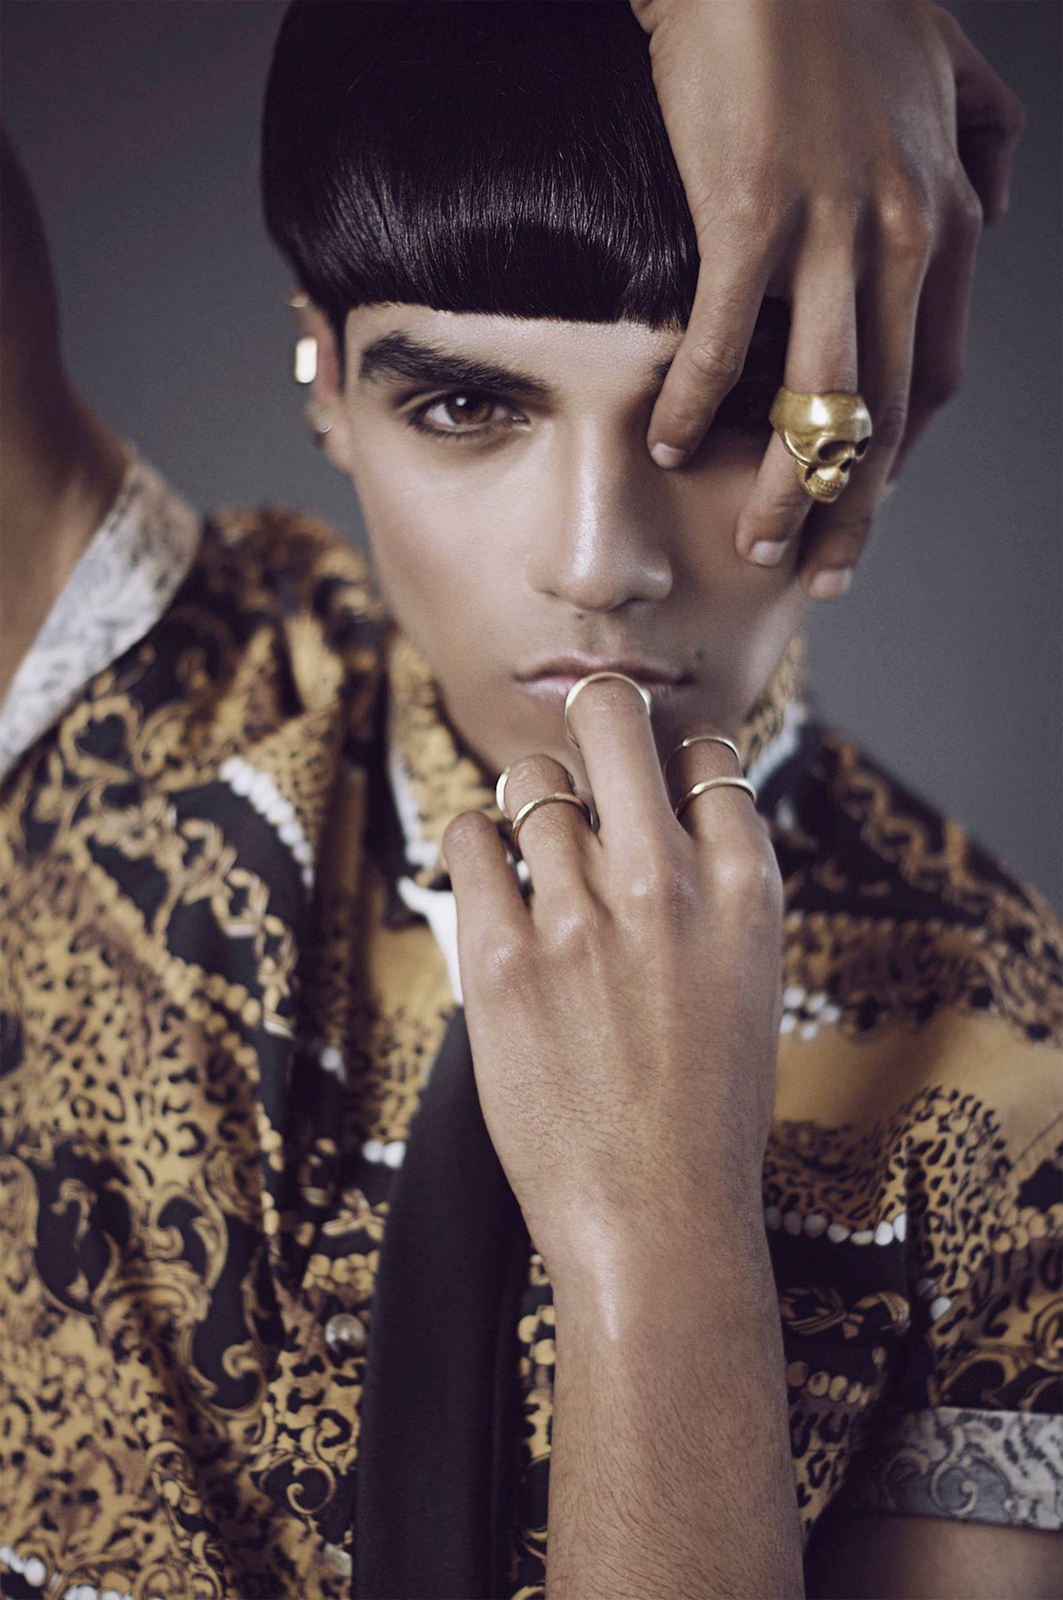 Jvdas Berra - Jean Rico - hair makeup Gio Lozano - stylist Federico Laboureau and Maximilian Pizzi - assist Blanka HG